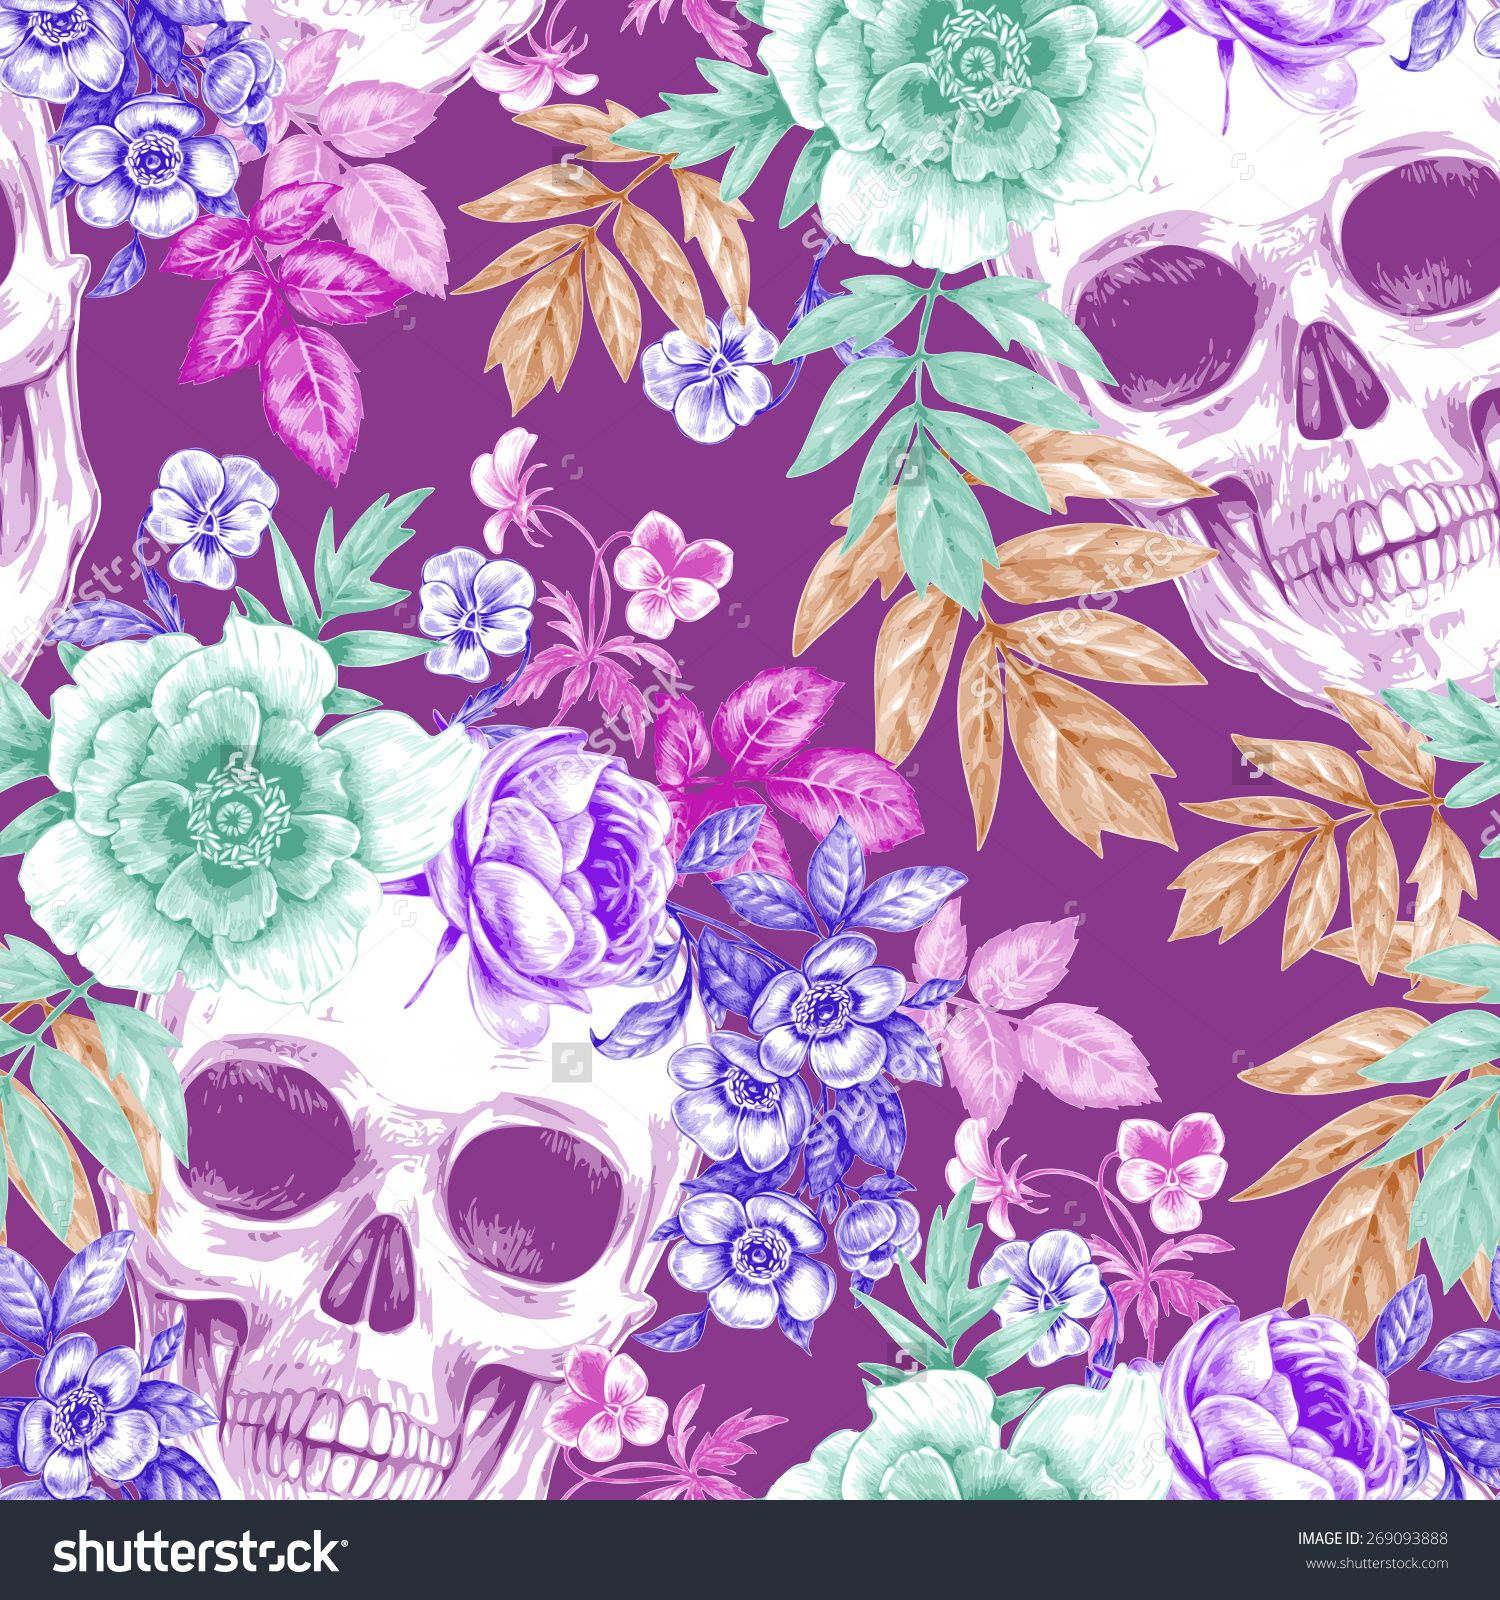 Skulls Flower Wallpaper - Google Search